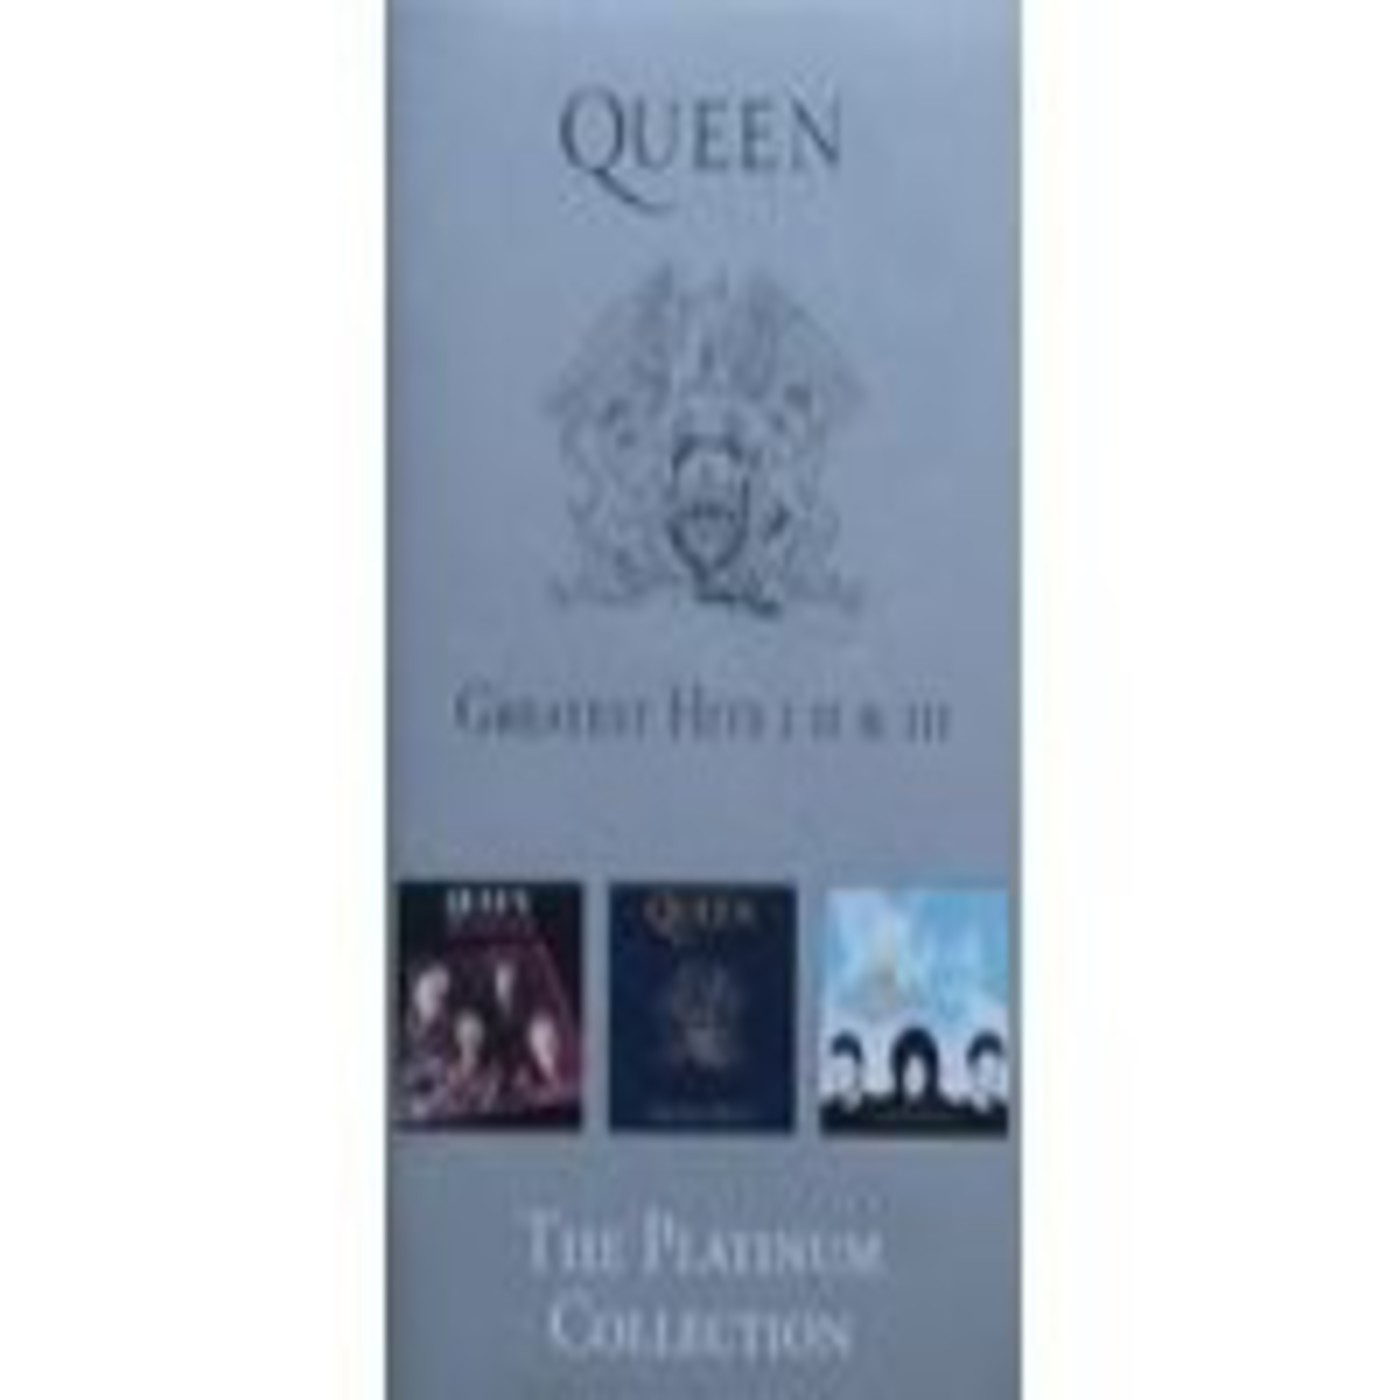 QUEEN - The Platinum Collection Greatest Hits I II & III + Remixed (3 cds)